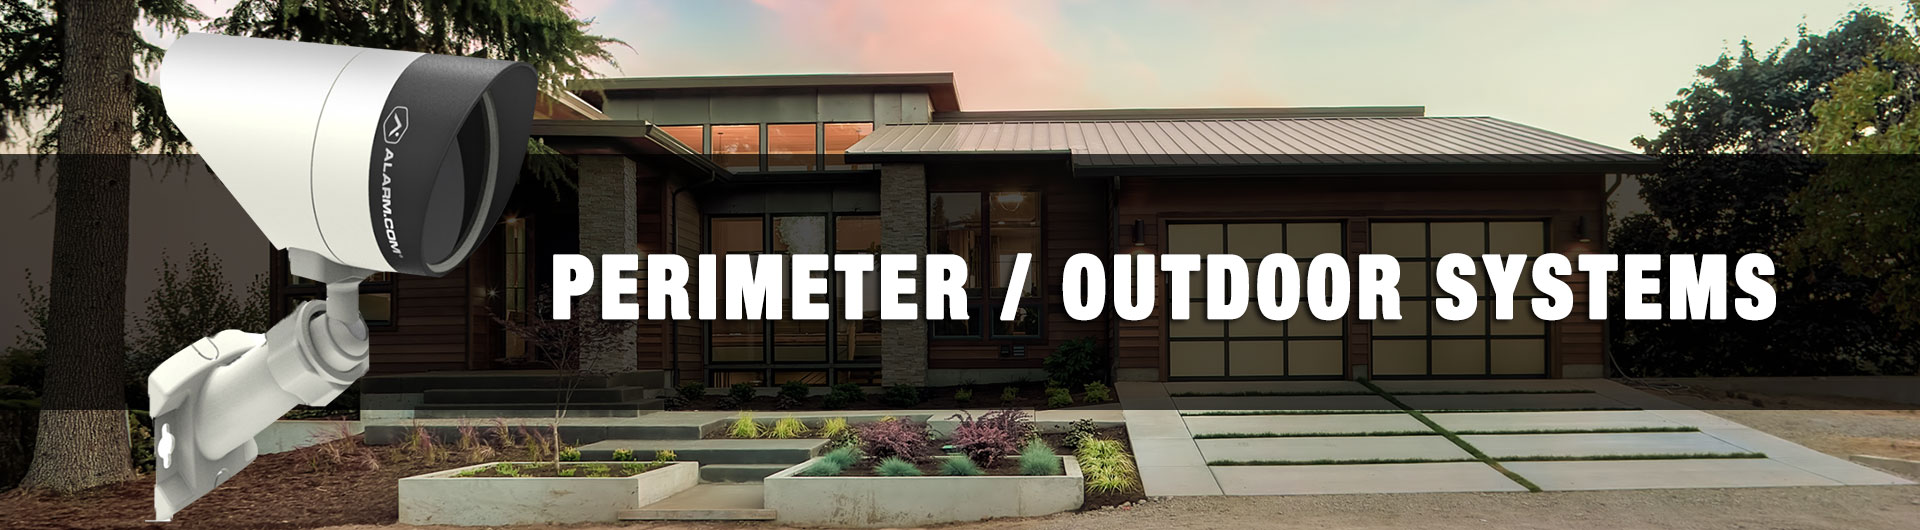 perimeter outdoor systems